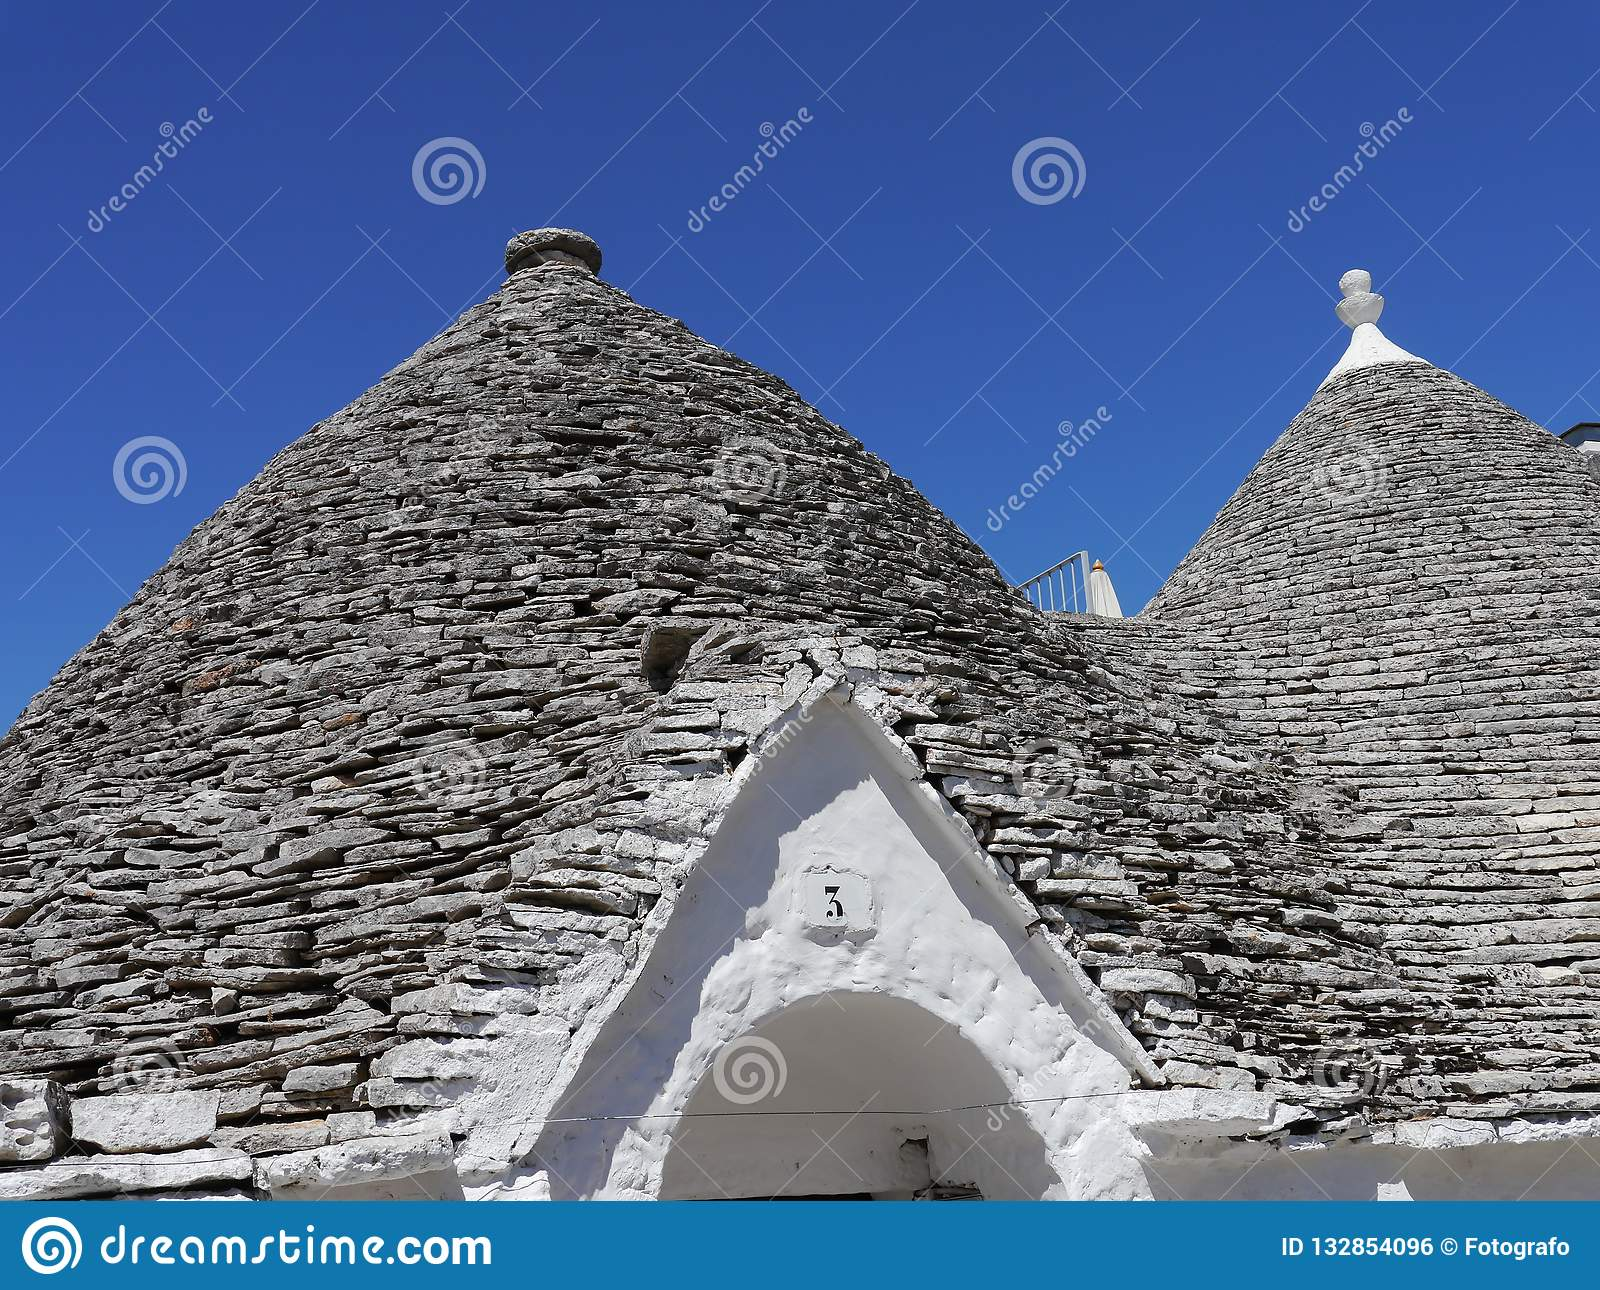 Detail of a trullo in Alberobello, Apulia region in Southern Italy.